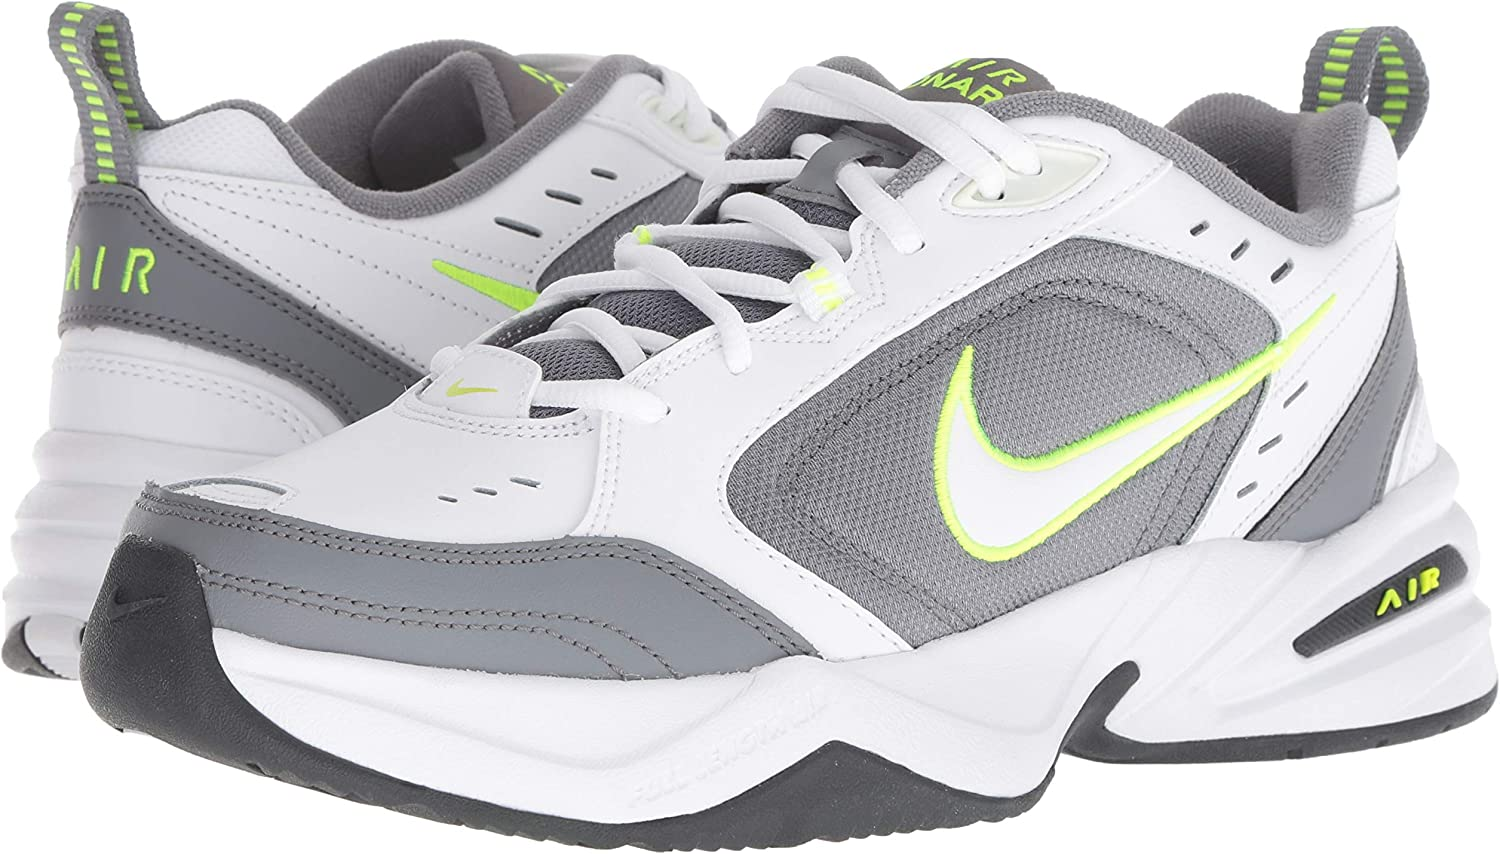 Nike Air Monarch IV, Zapatillas de Gimnasia para Hombre: Amazon.es ...